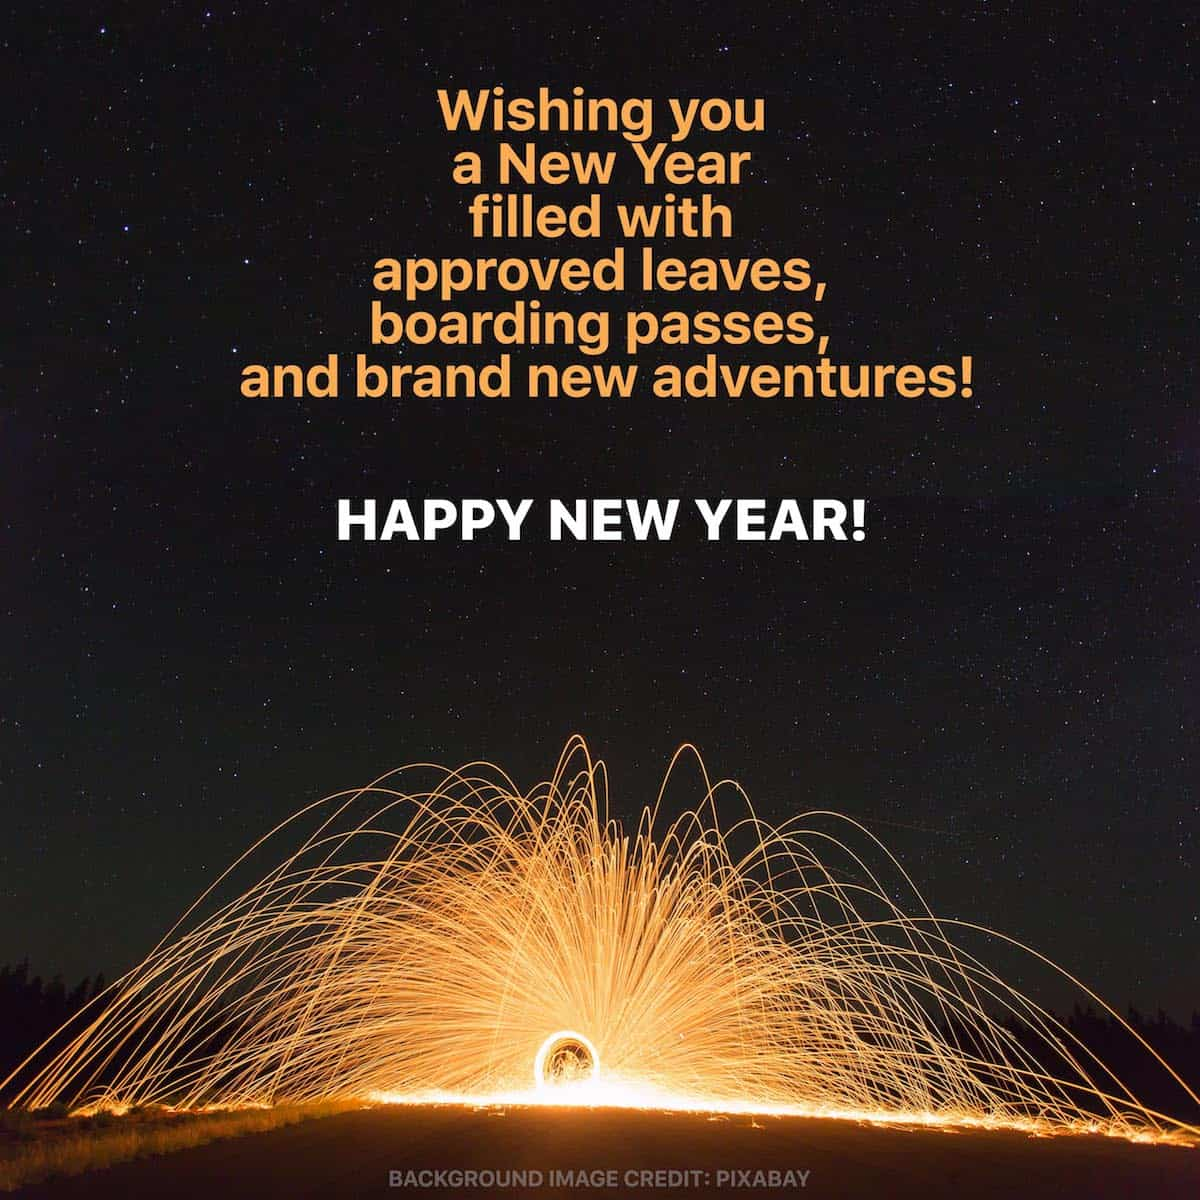 12 New Year Quotes Wishes Amp Greetings For Travelers